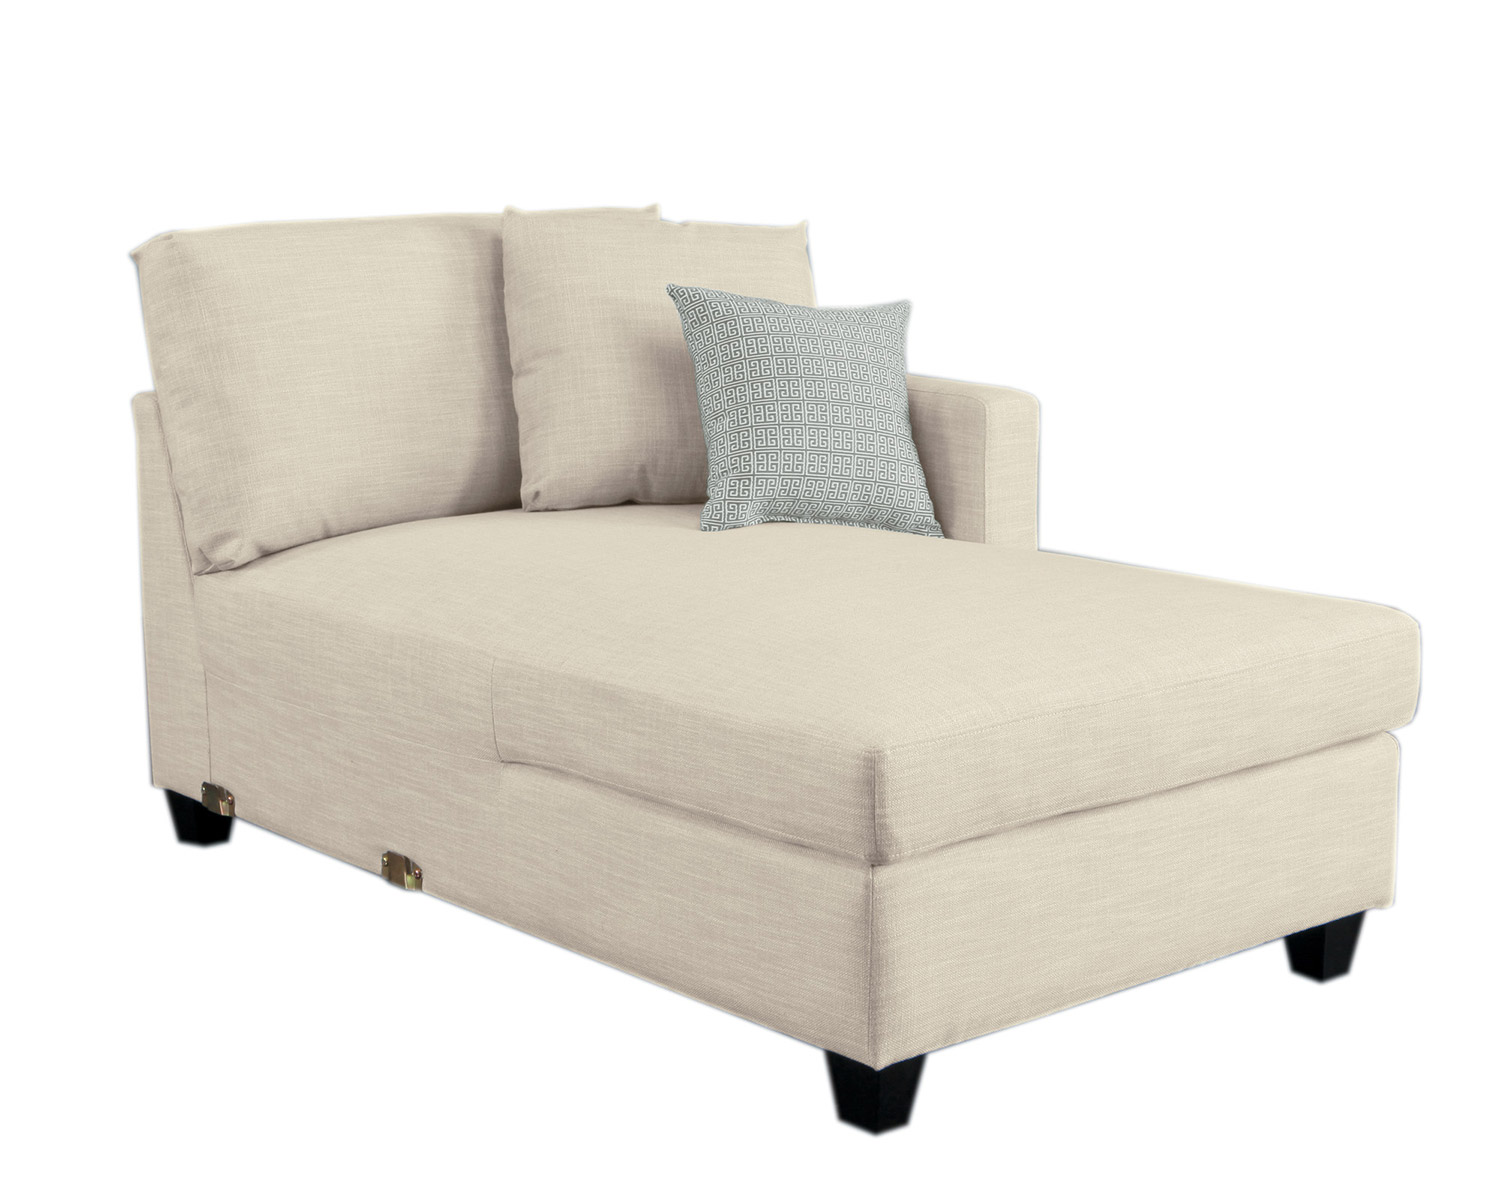 Homelegance Southgate Right Side Chaise - Ivory